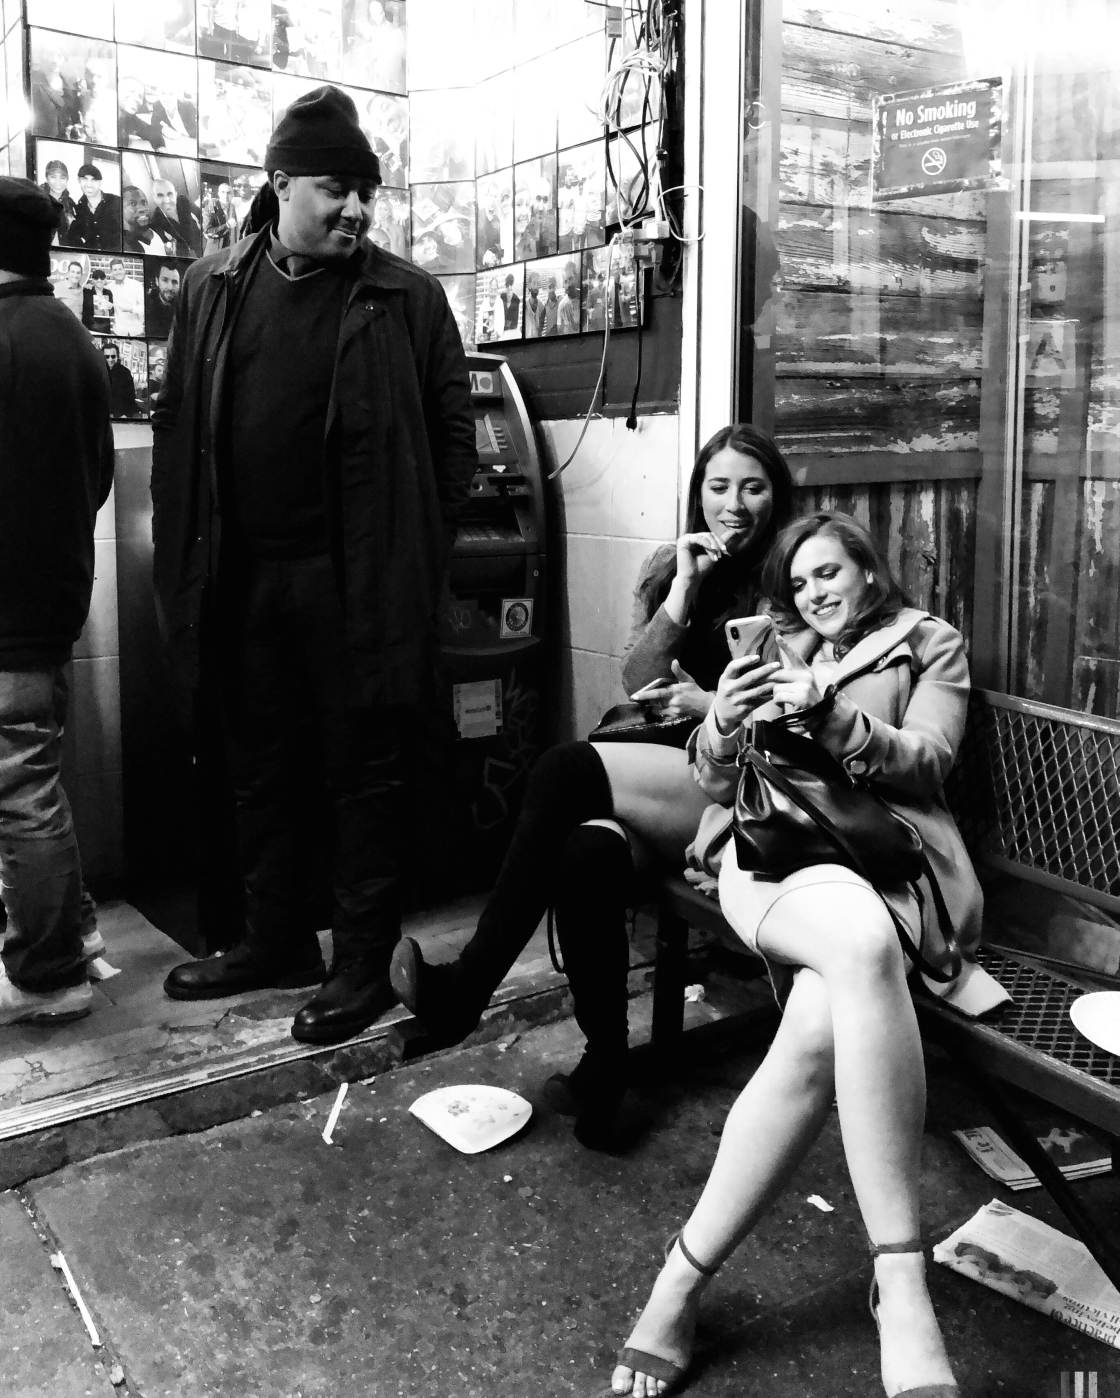 street photography storytelling no script